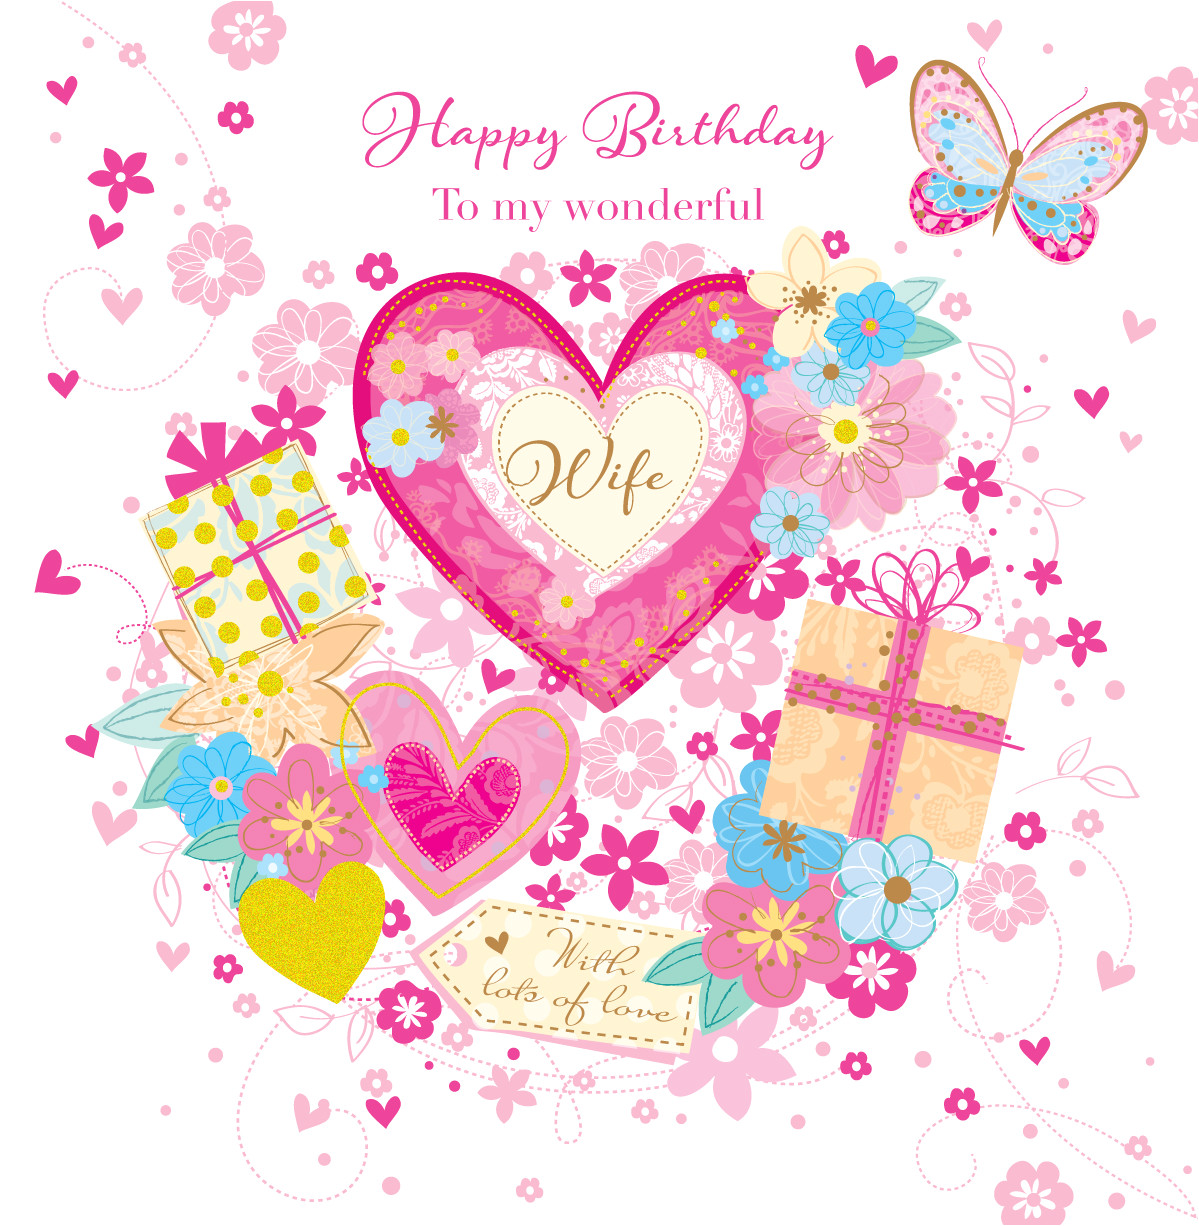 kctpsdse wonderful wife happy birthday greeting card by talking pictures cards